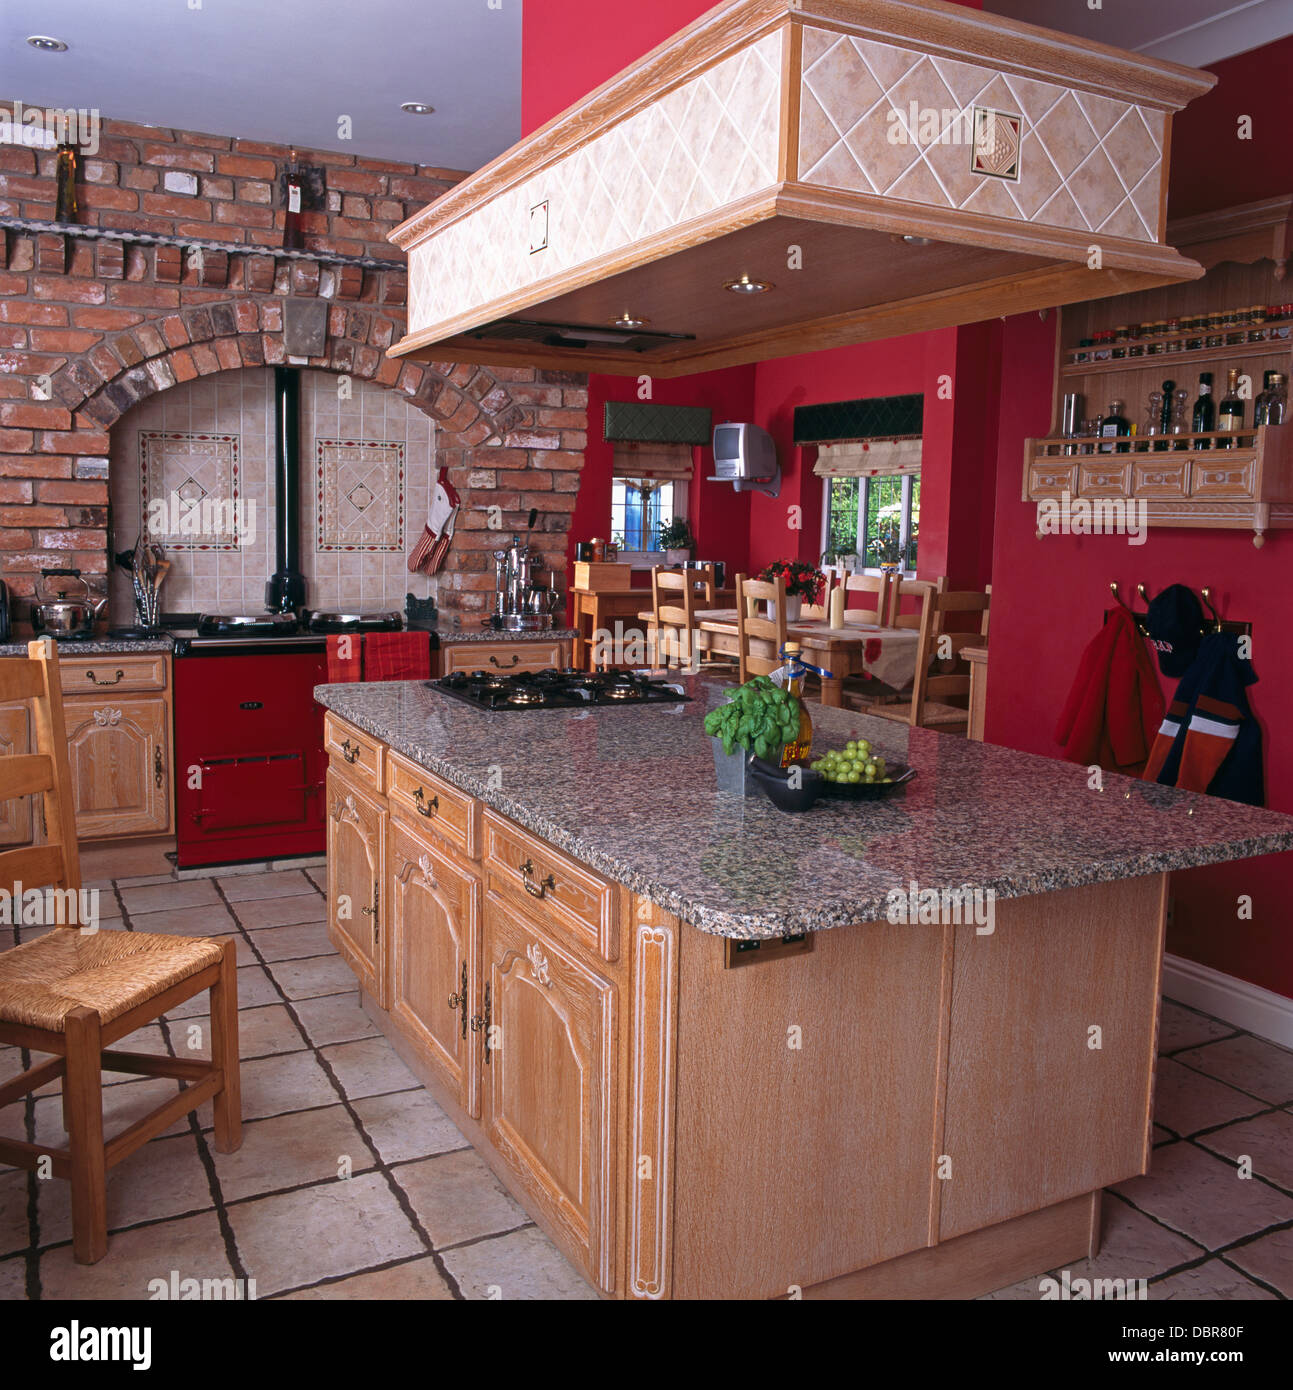 Wood Extractor Hood Above Island Unit With Granite Worktop In Red Country  Kitchen With Red Aga And Tiled Floor